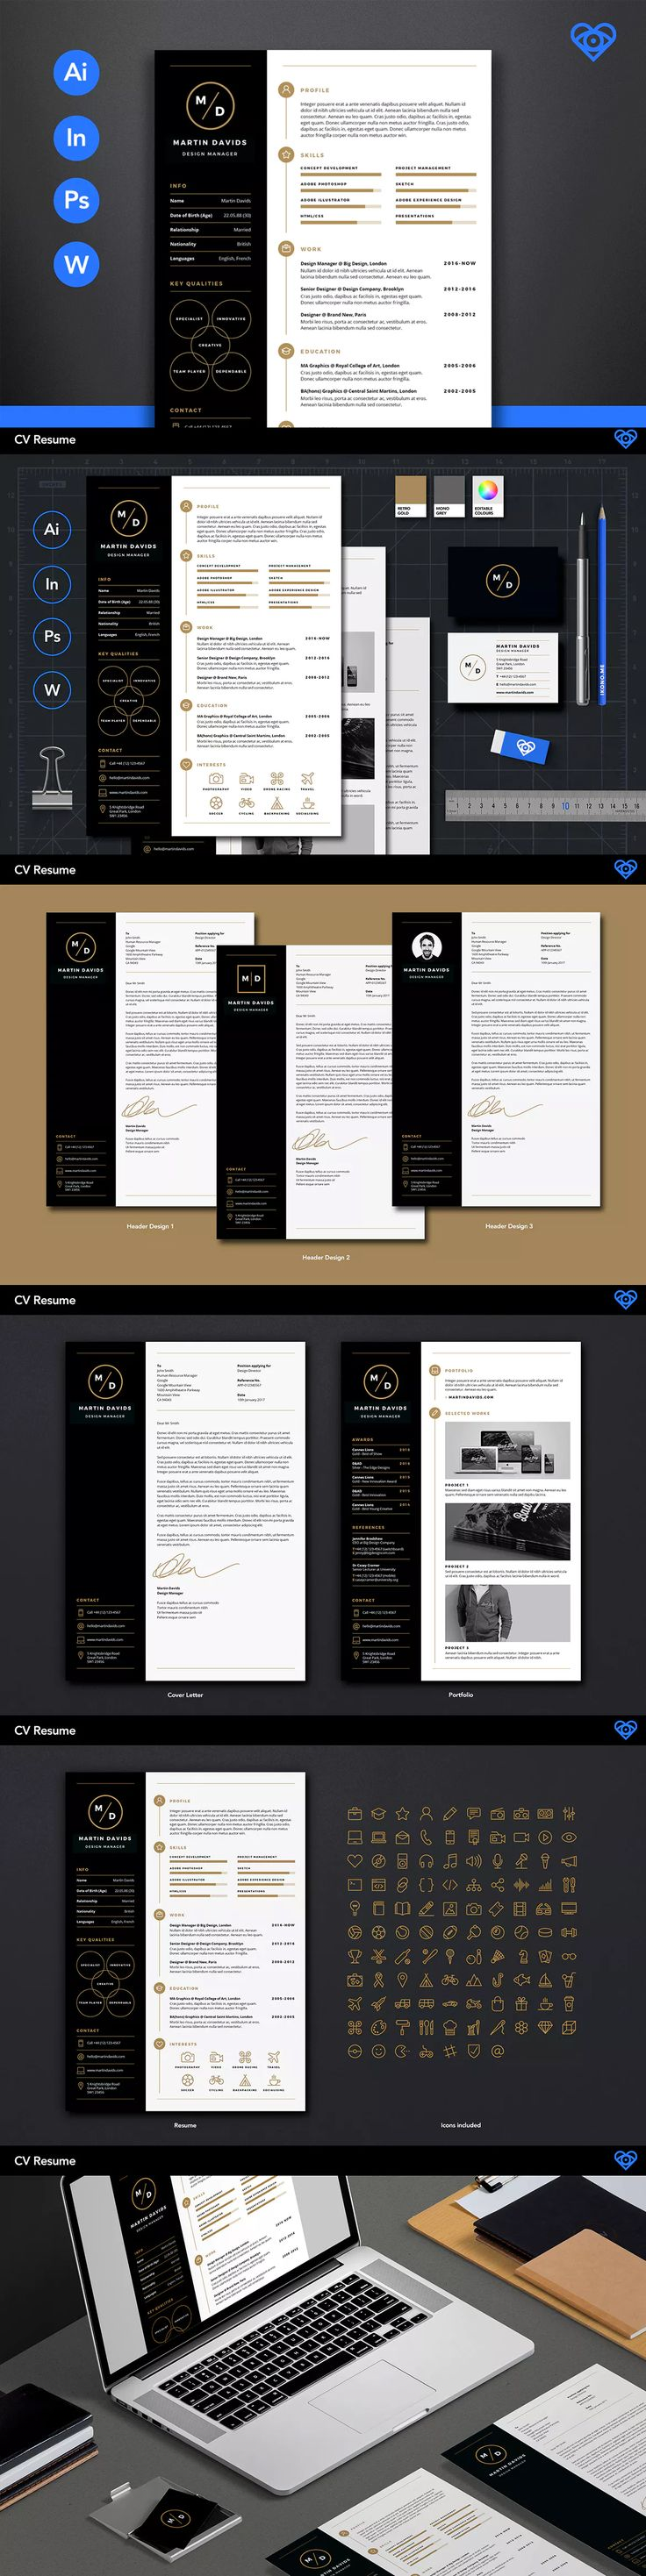 91 best CV and business cards images on Pinterest | Lipsense ...